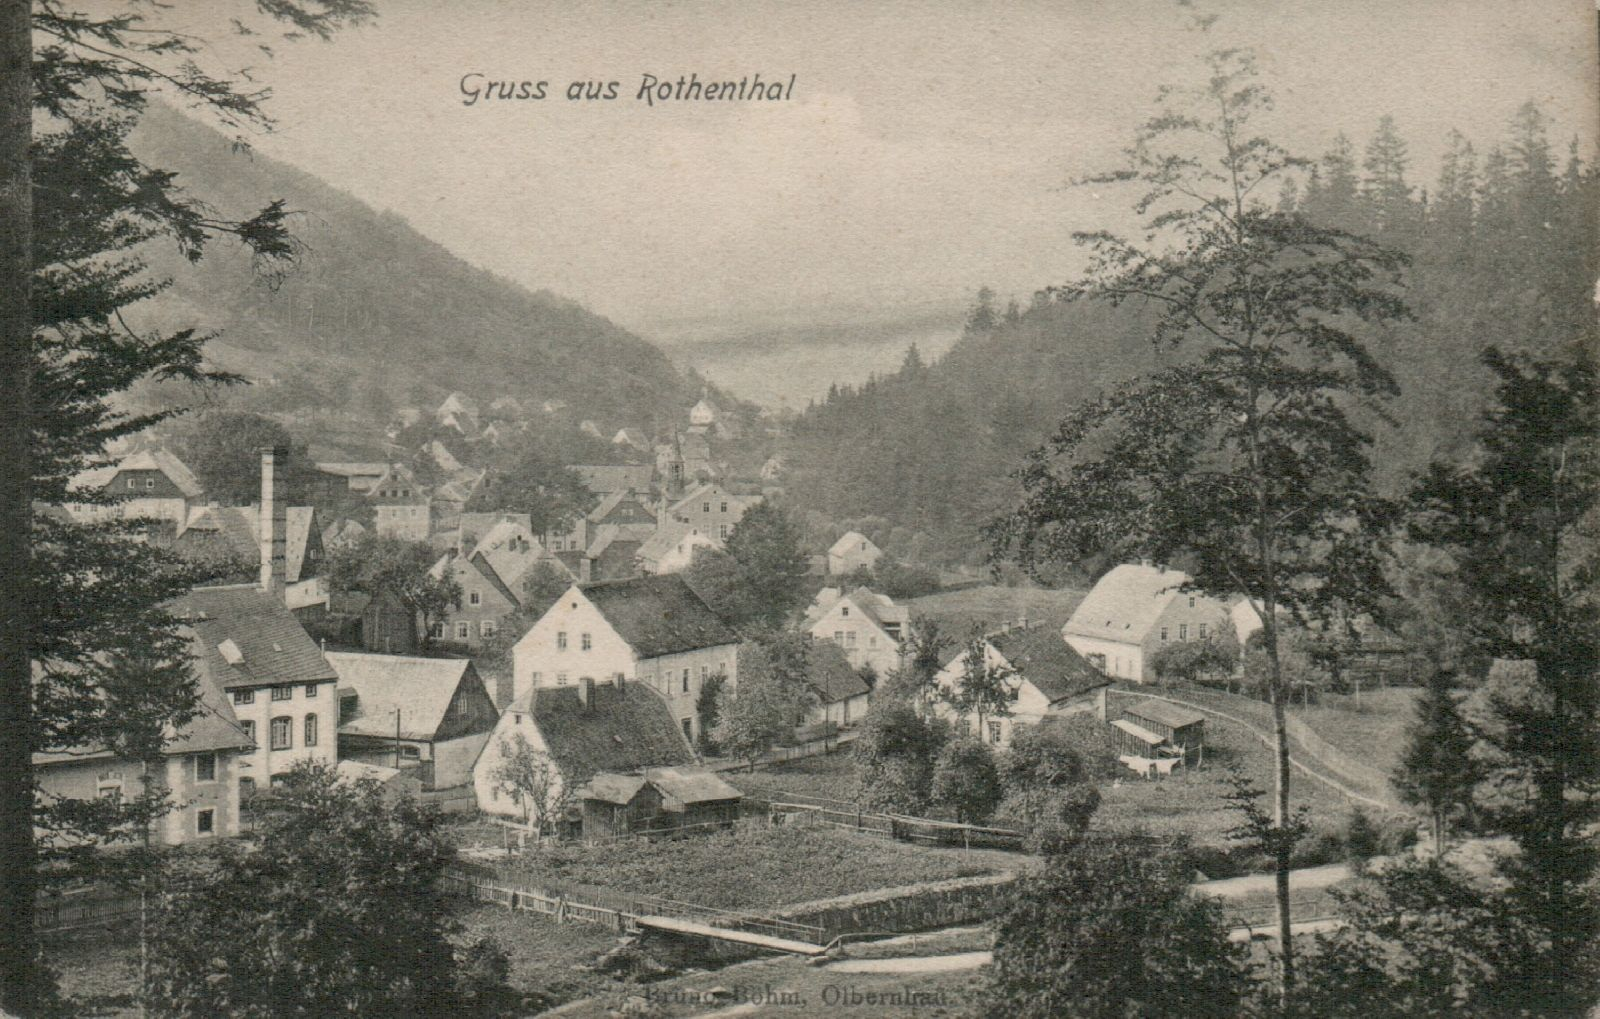 Rothenthal